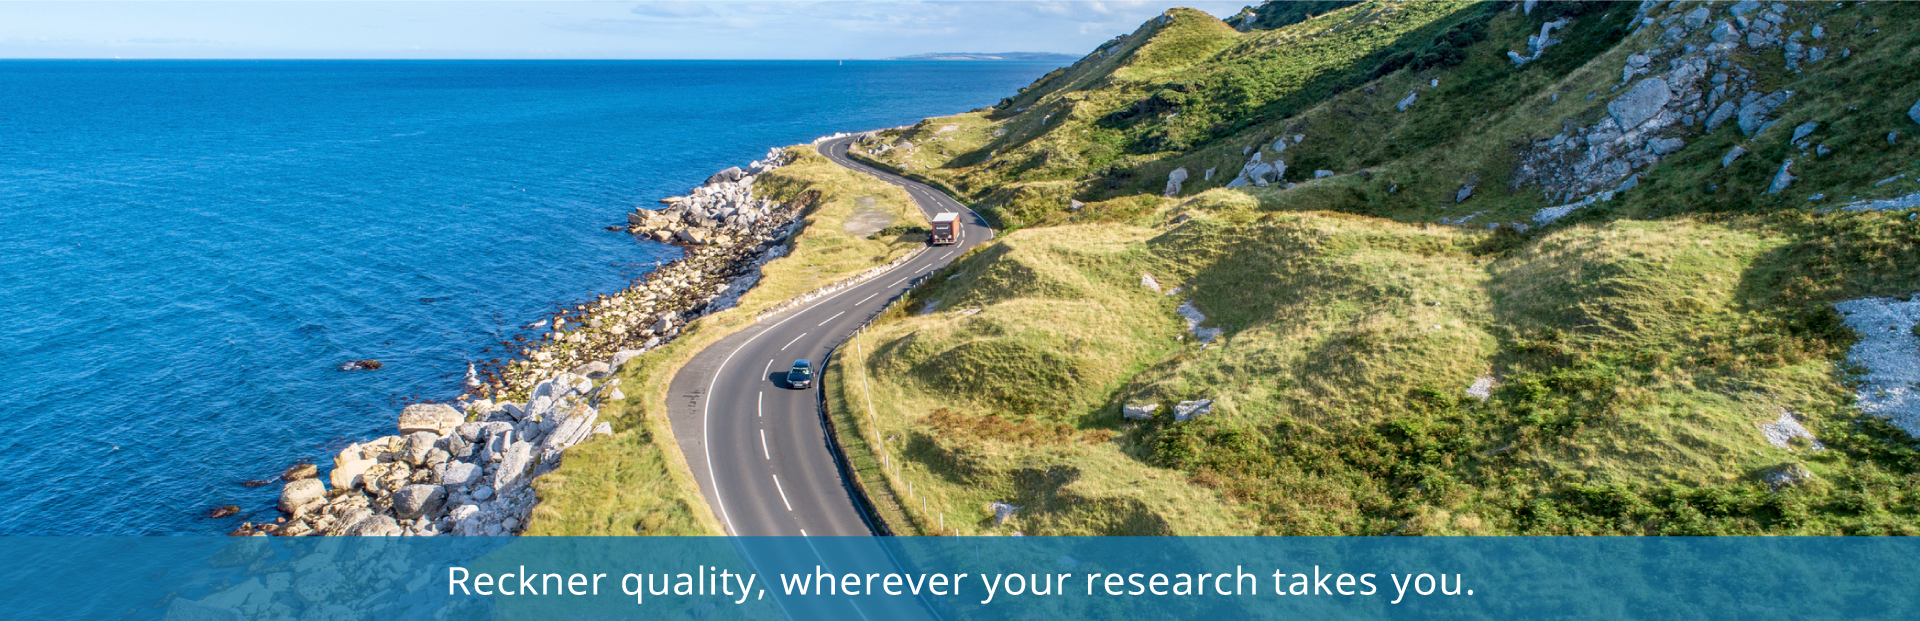 Reckner quality, wherever your research takes you